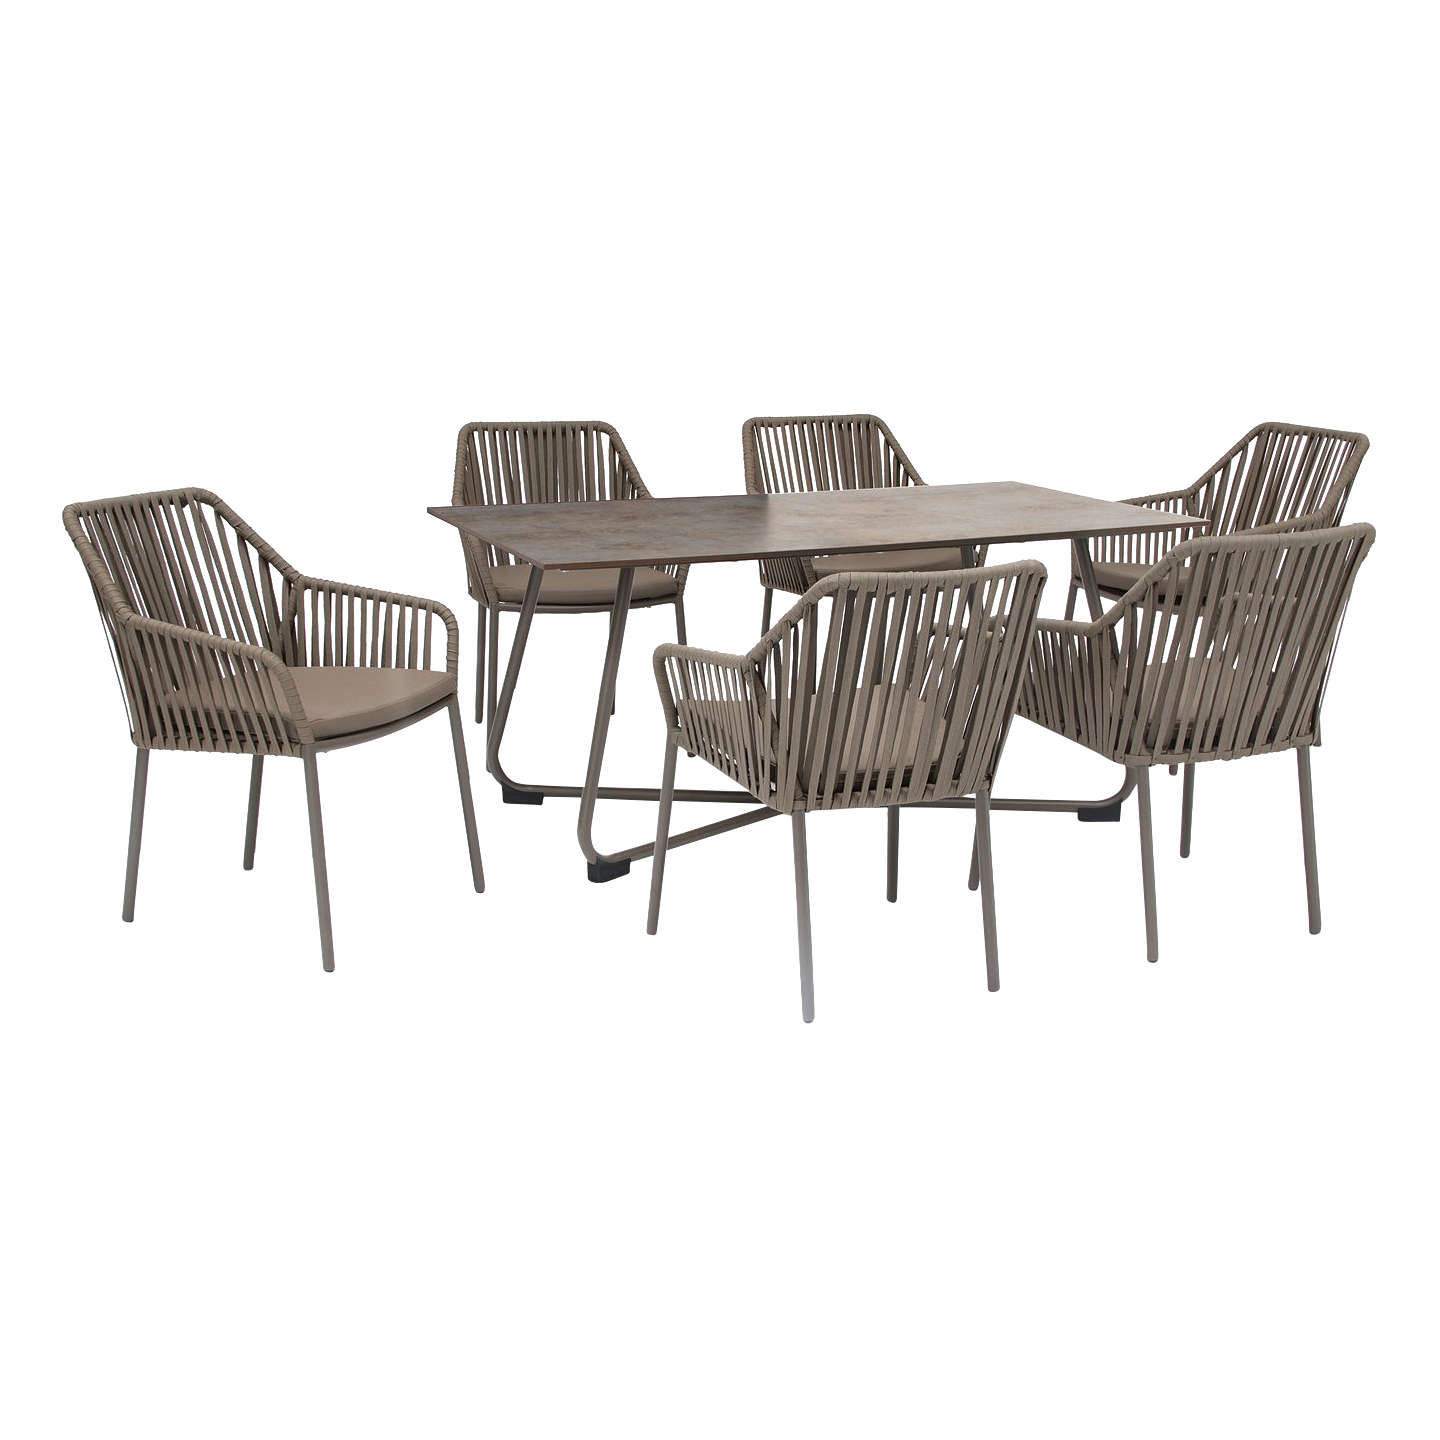 kettler manhattan 6 seater twist garden table and chairs set taupe